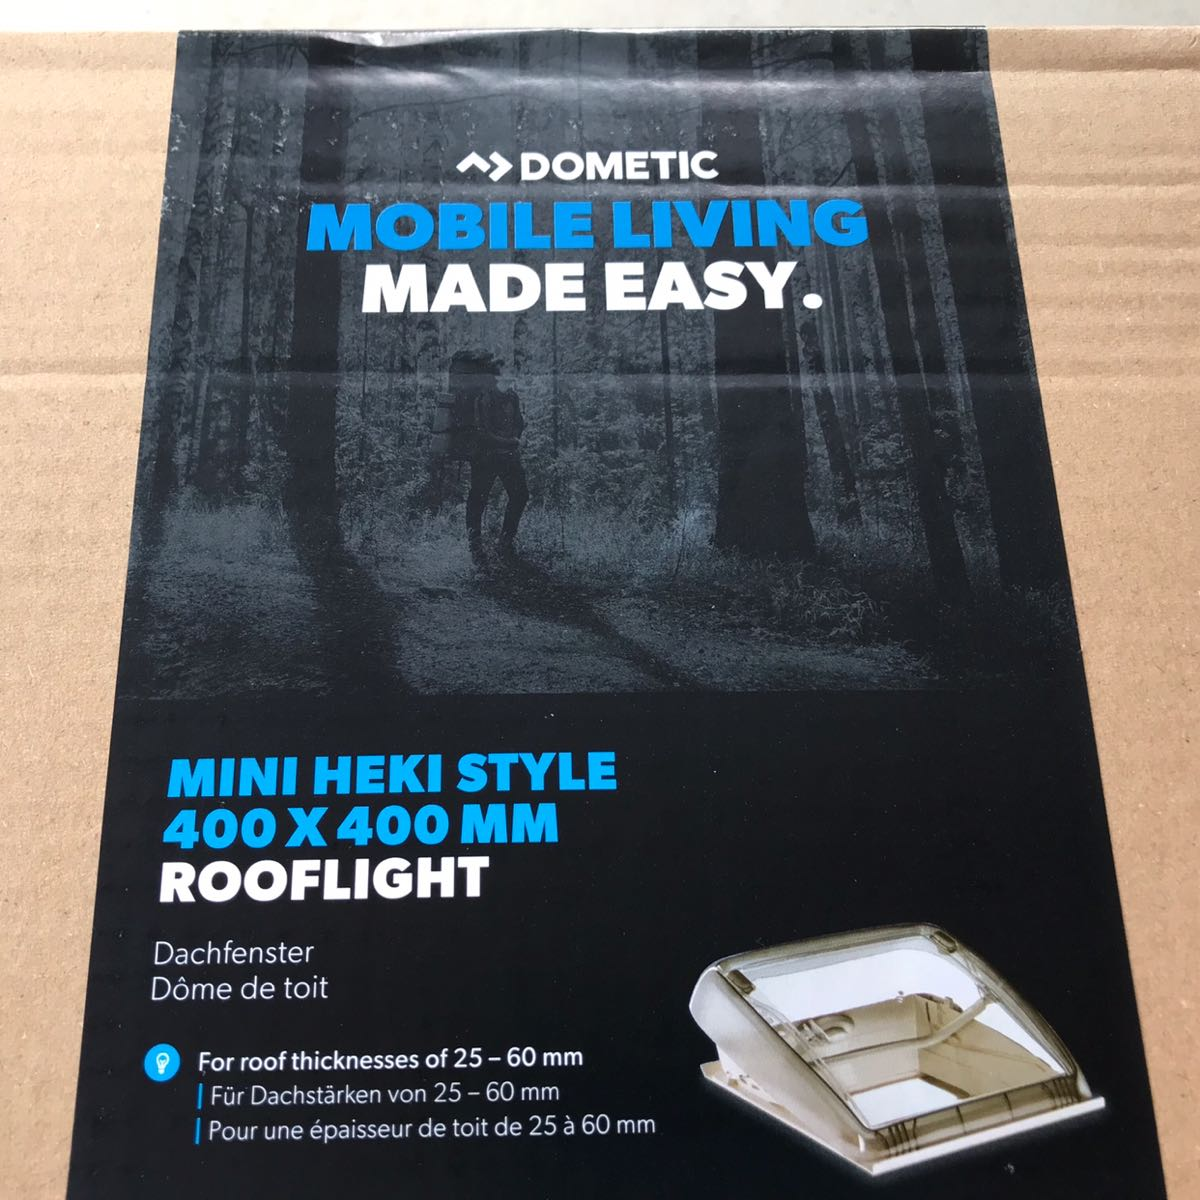 DOMETIC MINI HEKIが届いた